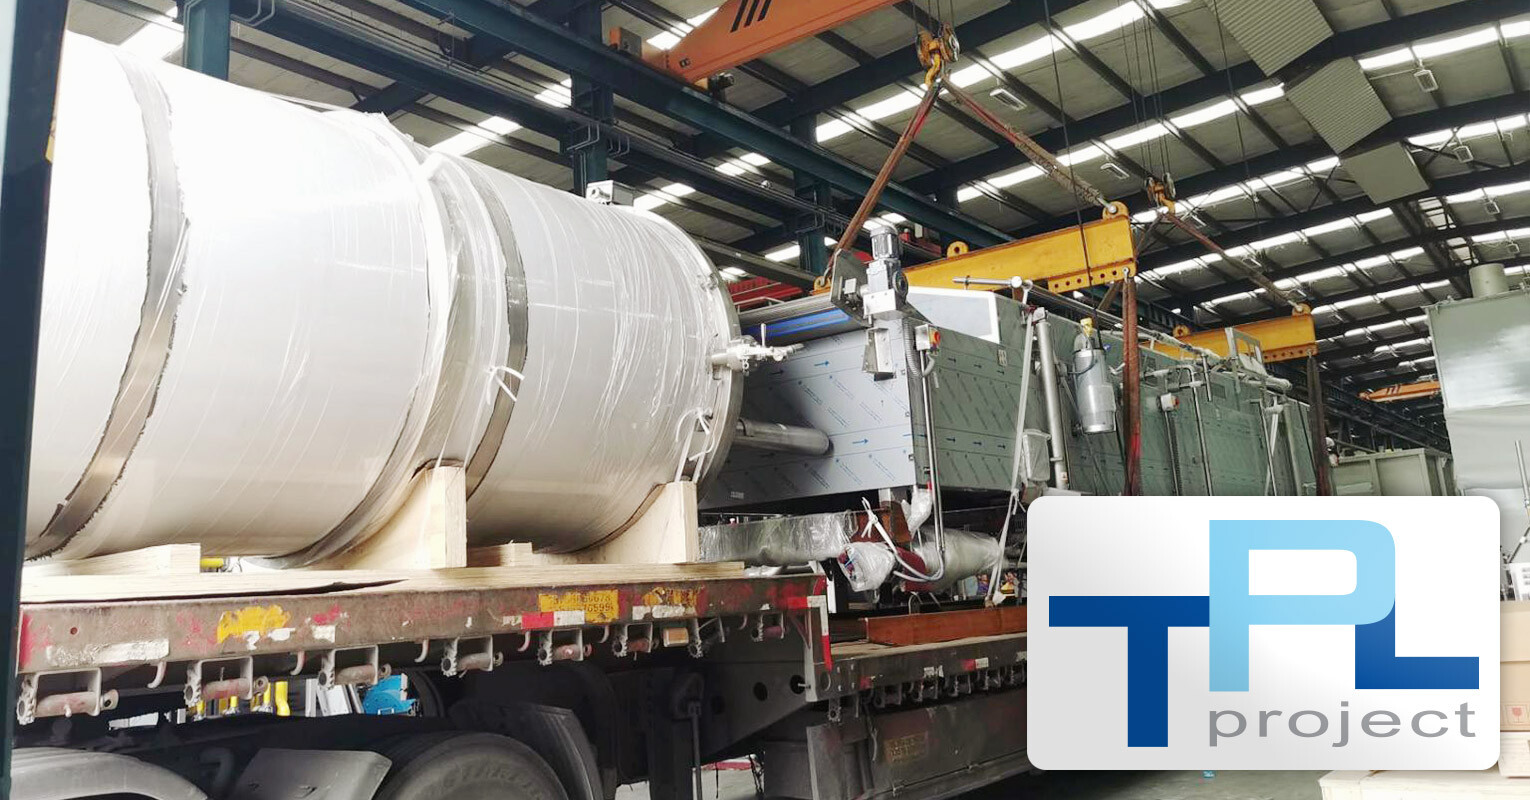 TPL Project Handled High Value Oversized Equipment from Nanjing to Deyang, Sichuan for the Pepsi Plant